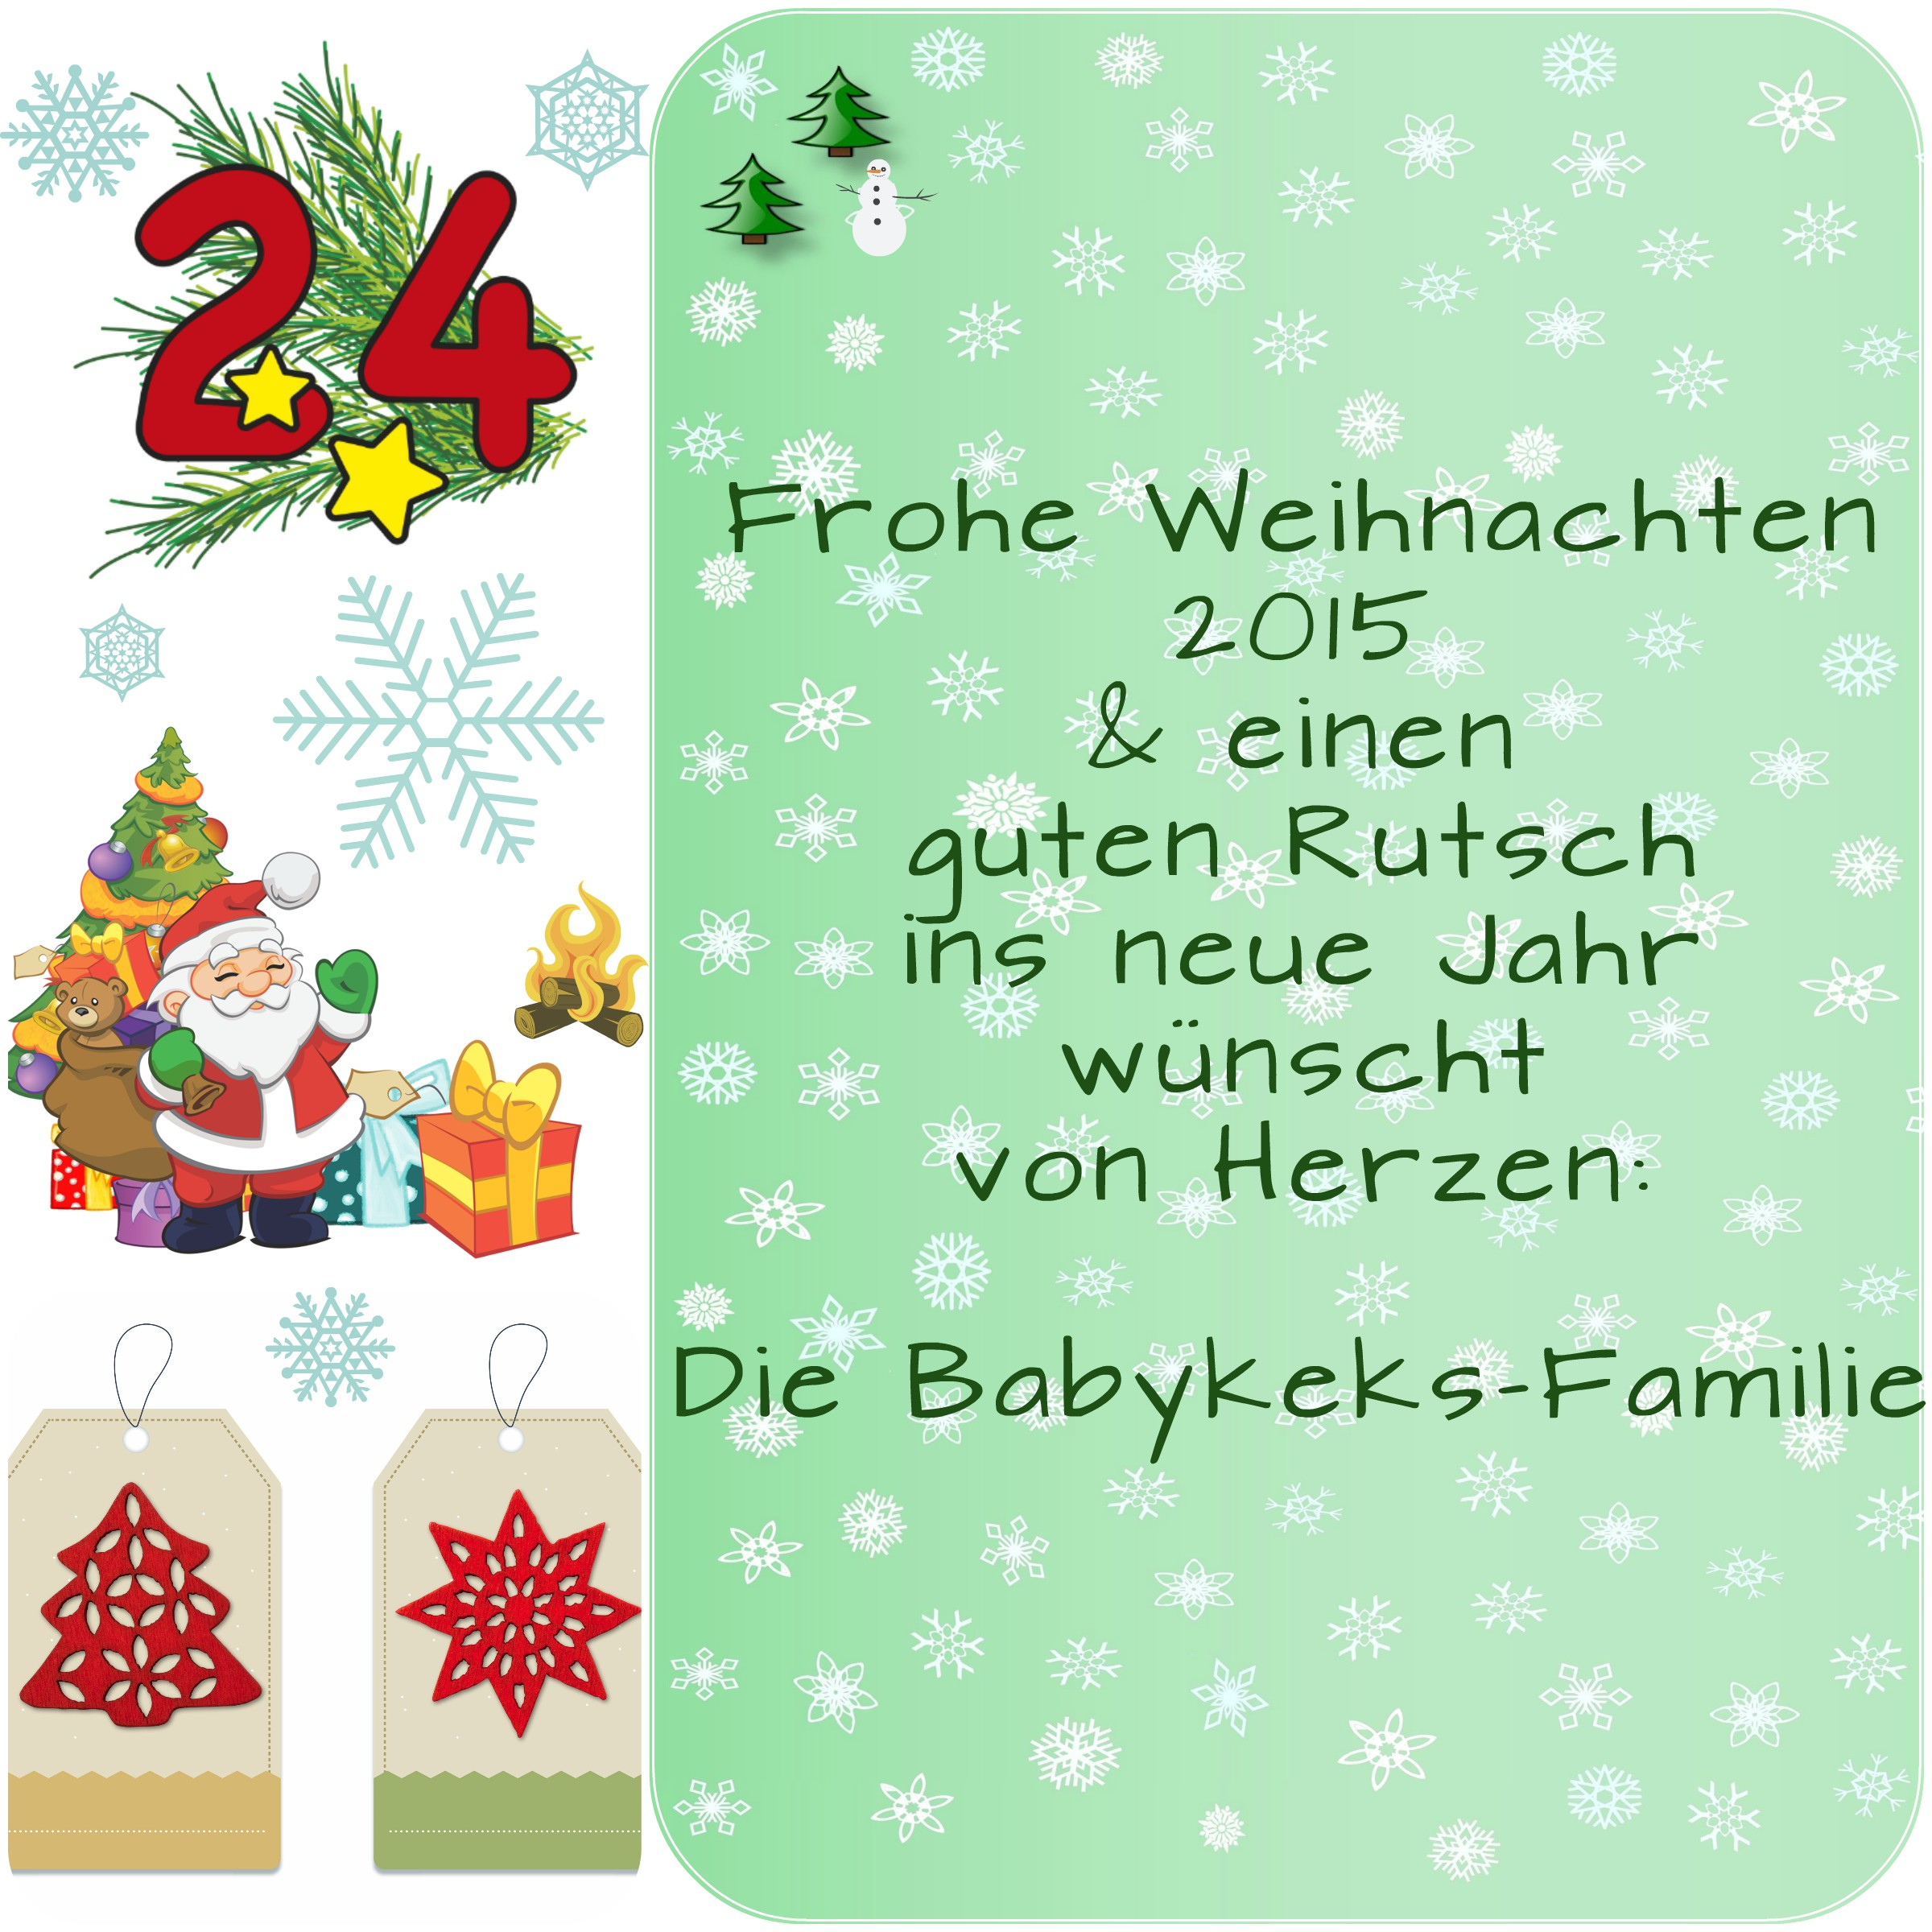 frohe weihnachten 2015 babykeks. Black Bedroom Furniture Sets. Home Design Ideas